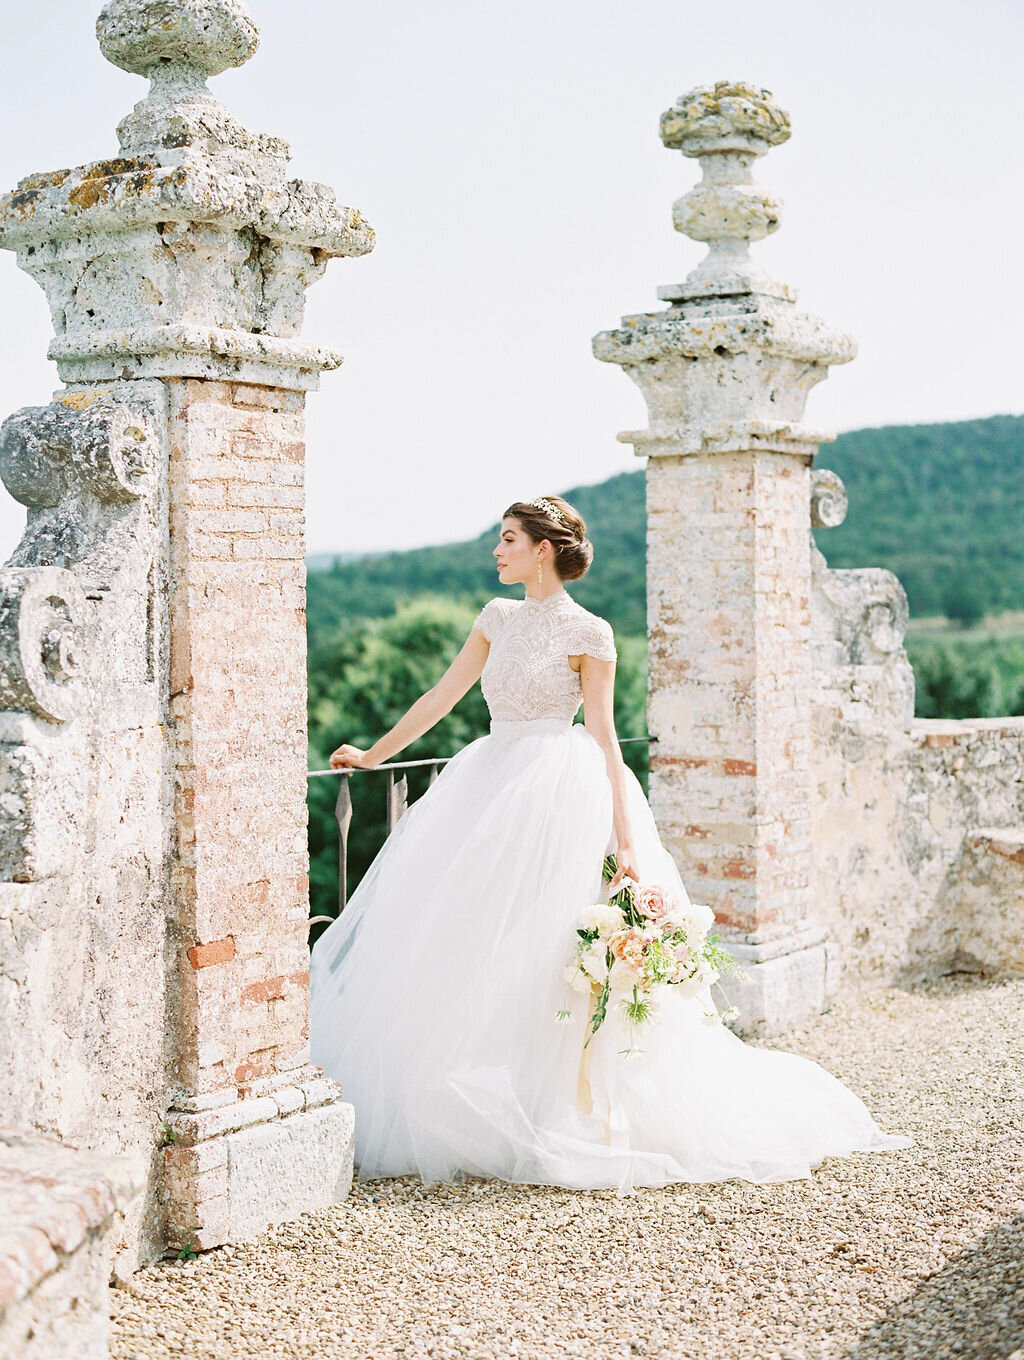 Trine_Juel_hair_and_makeupartist_wedding_Italy_Castello_Di_CelsaQuicksallPhotography_CastelloDiCelsa0301